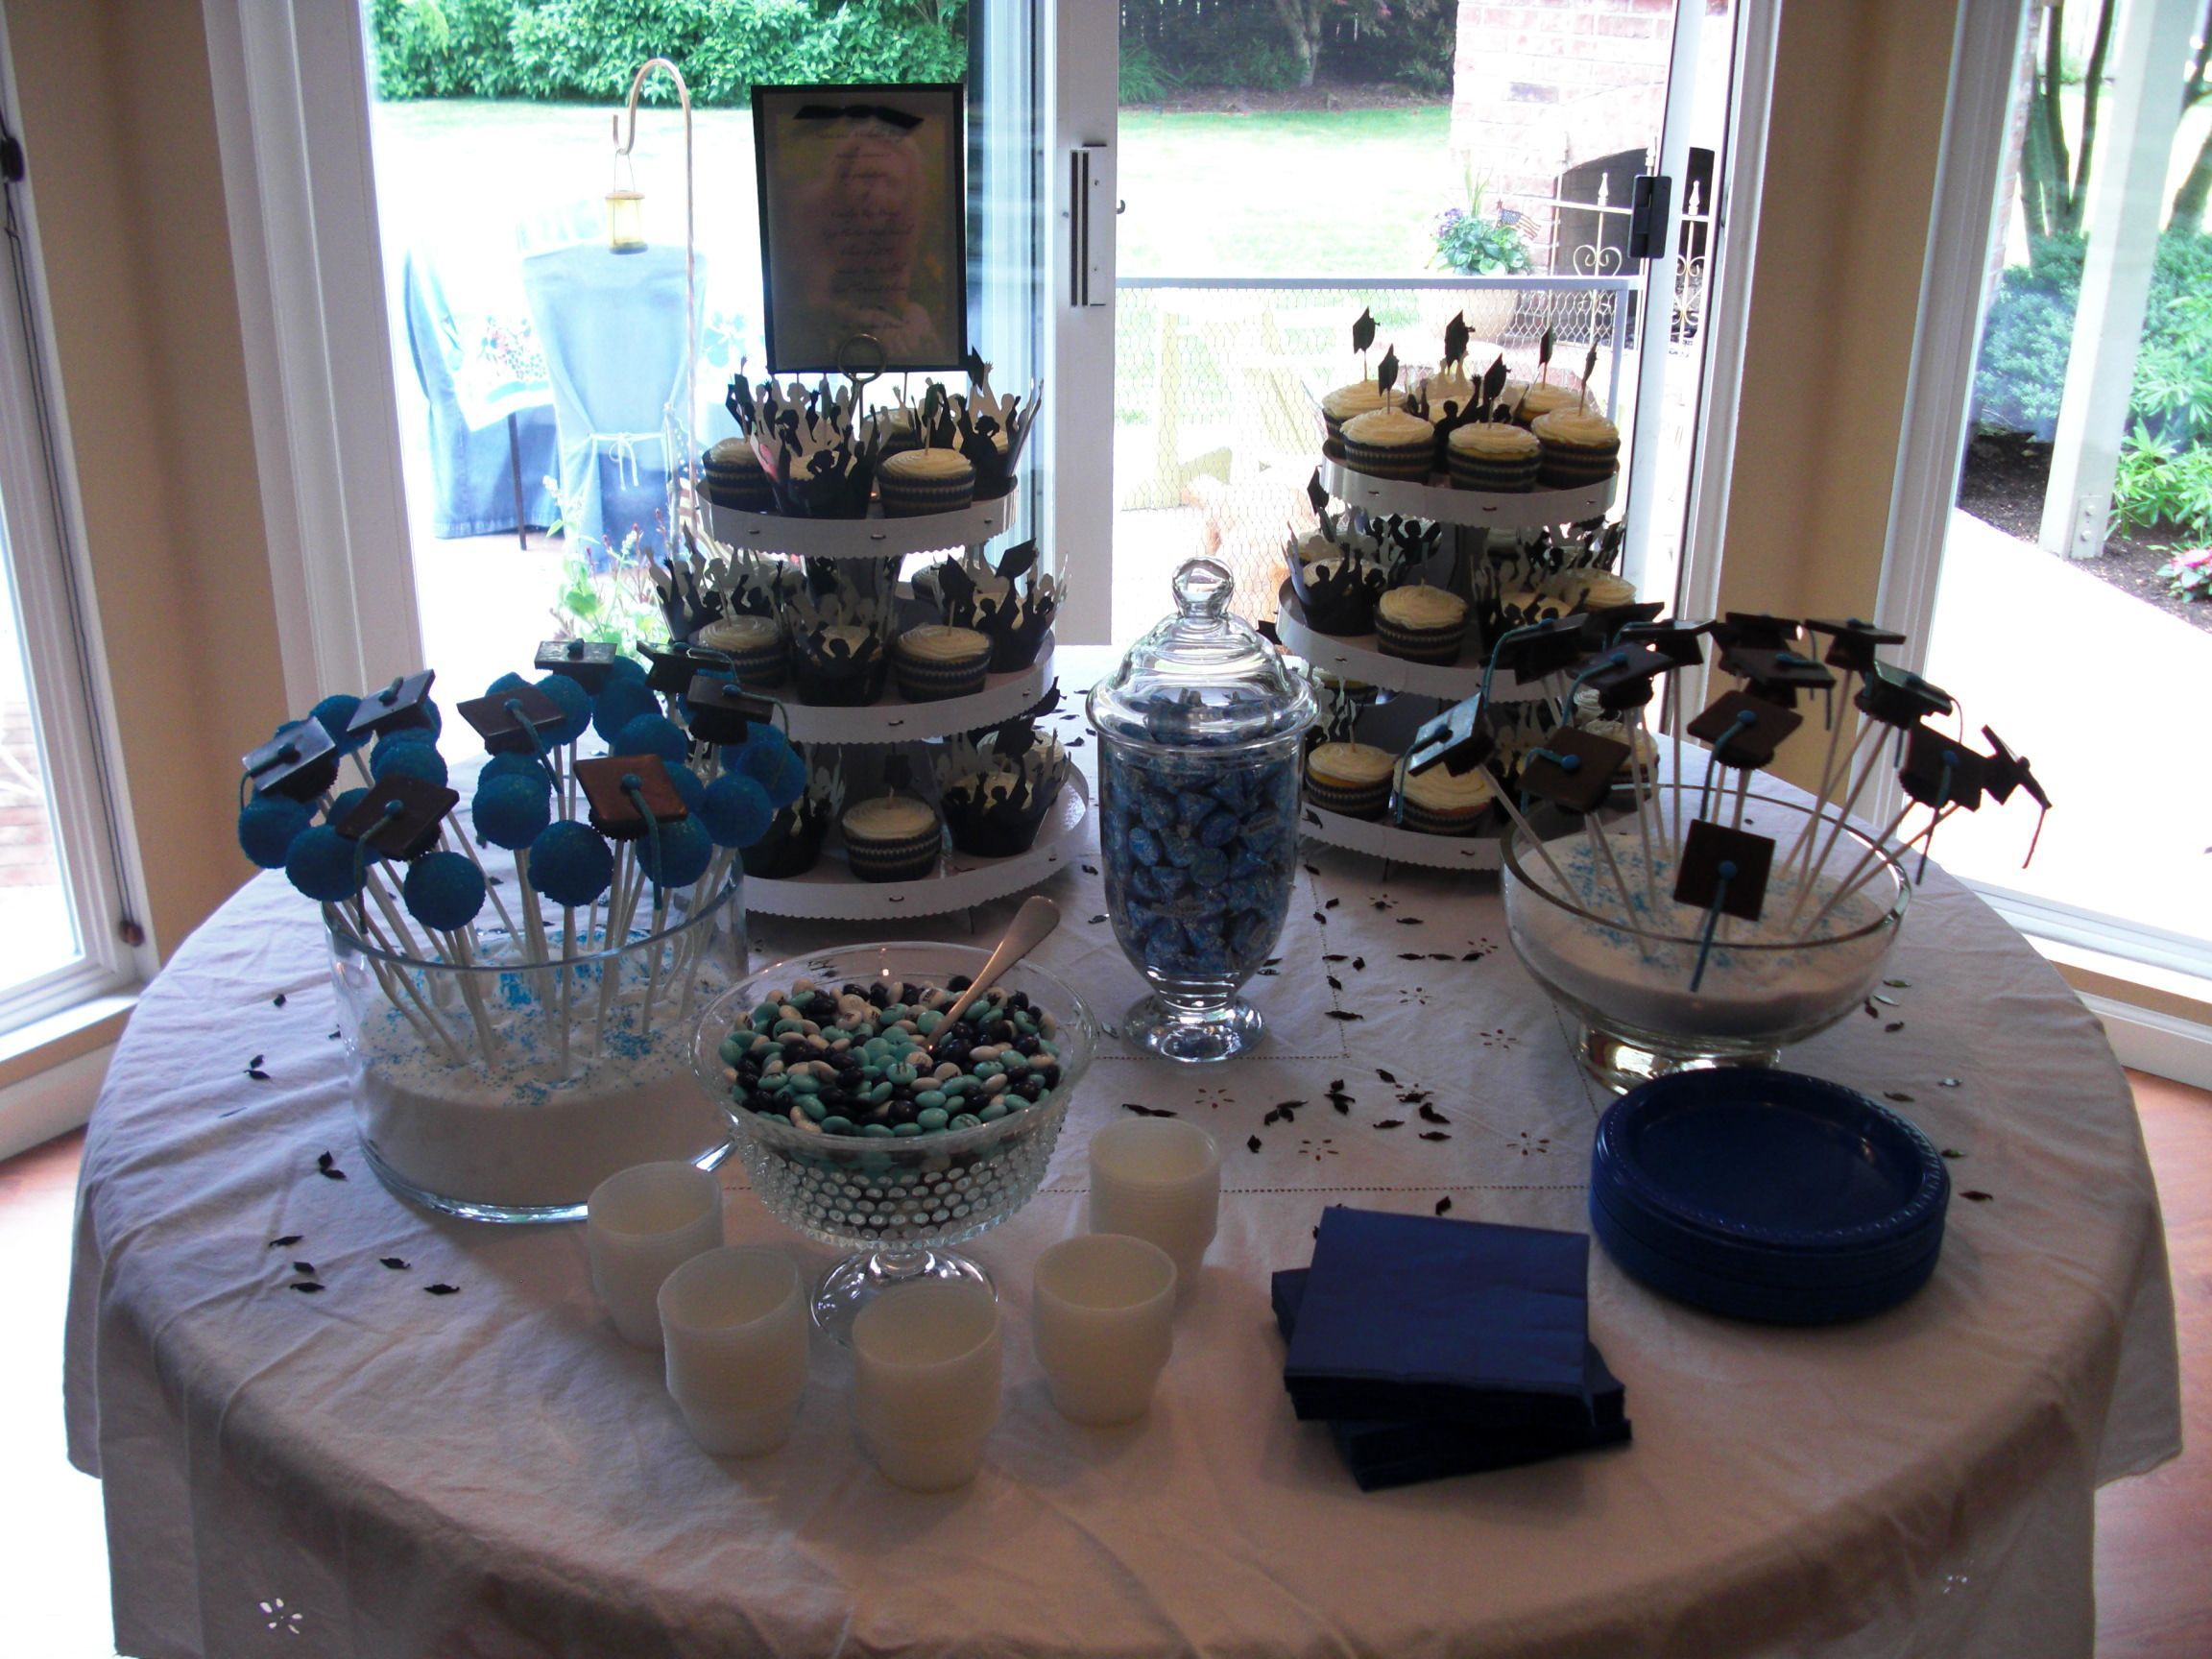 Graduation Party Dessert Table Graduation Party Desserts Graduation Party Table Graduation Party